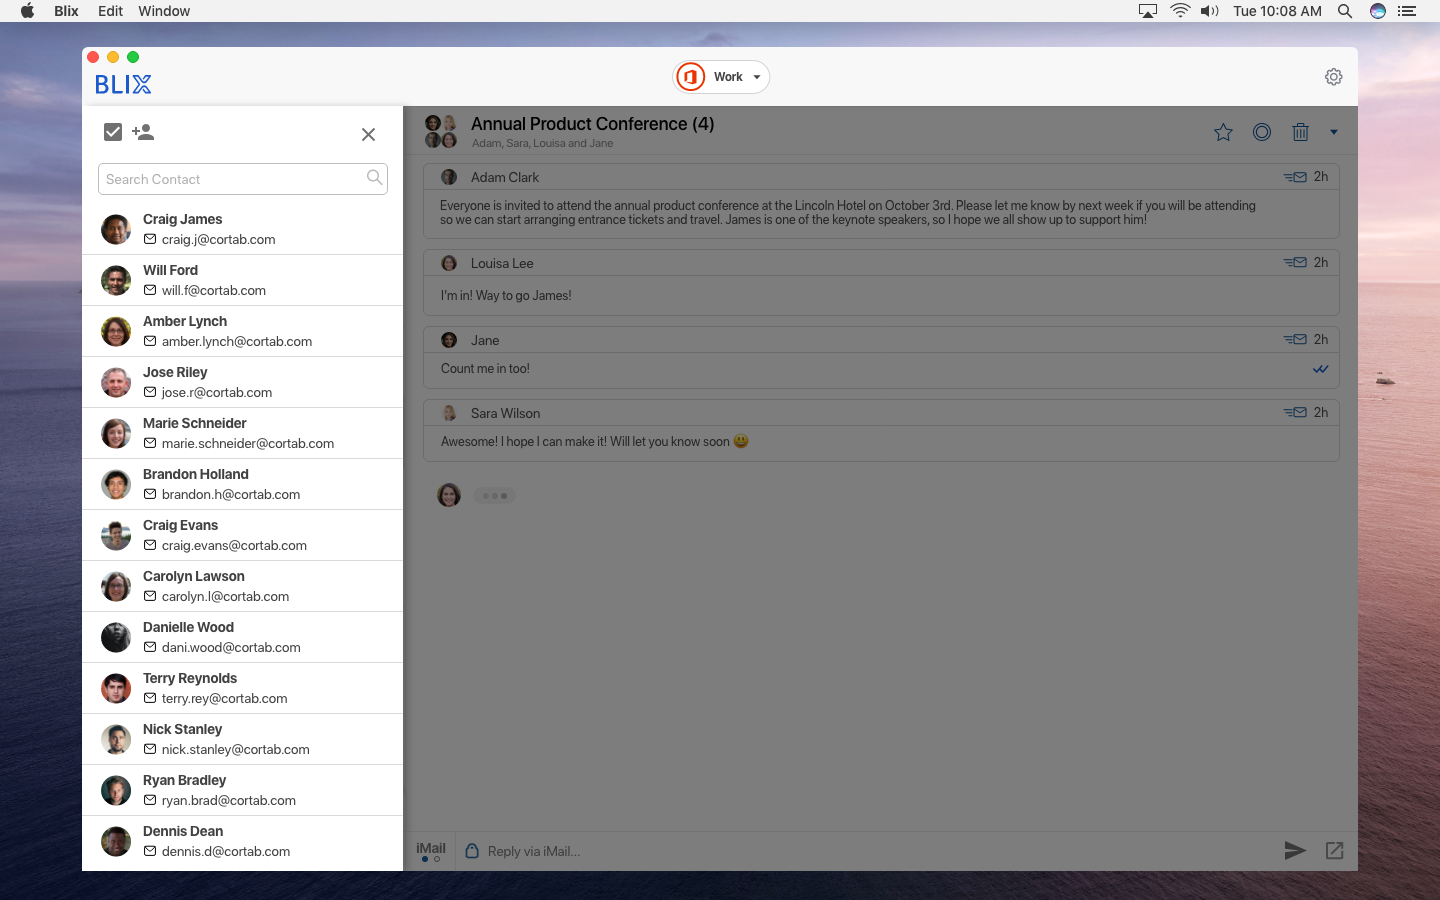 blix chat contacts on mac